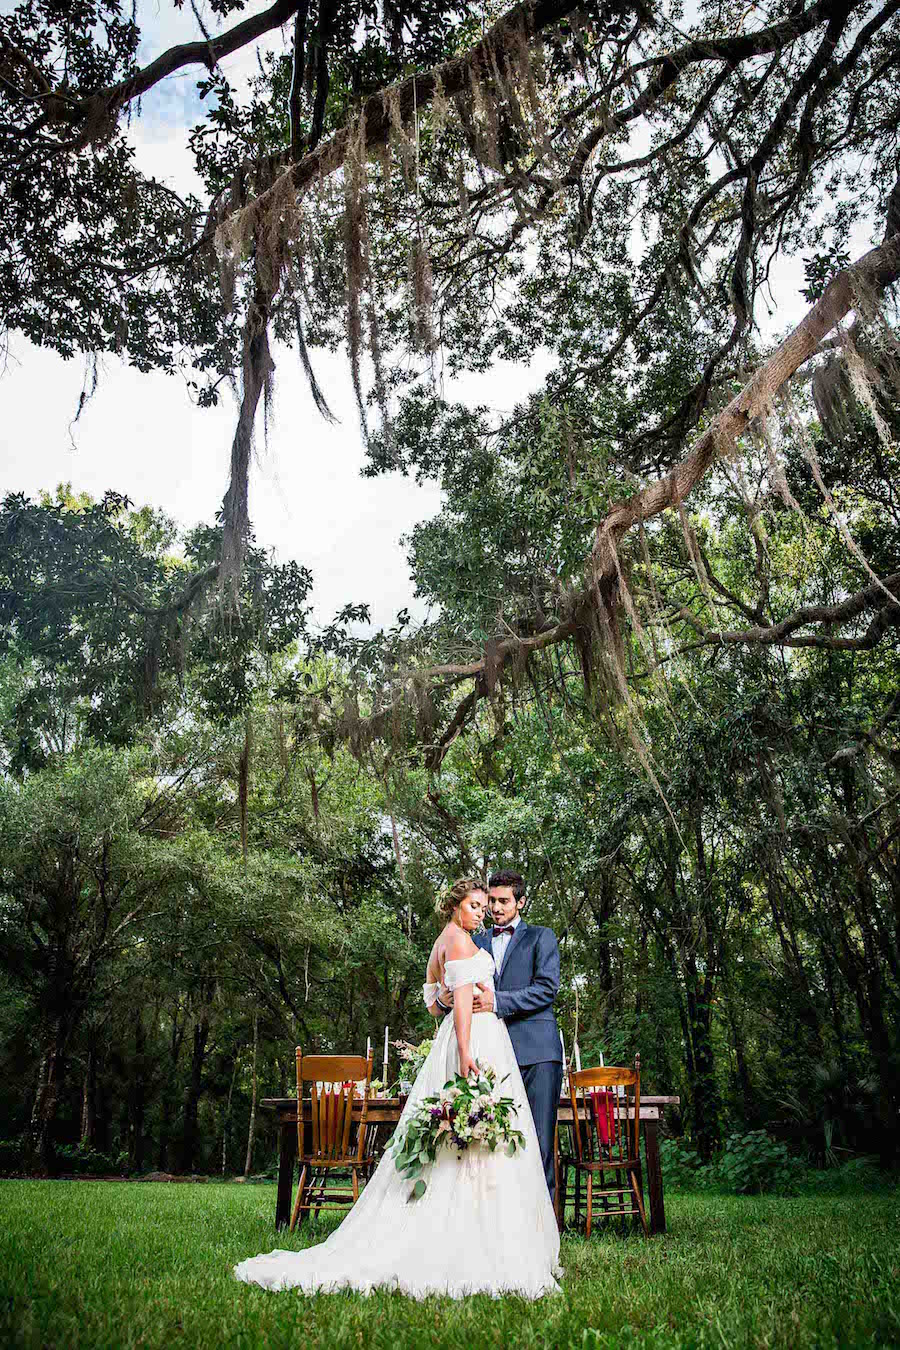 Bride wearing Amsale wedding dress from Blush Bridal Sarasota and Groom Portrait | Southern Inspired Outdoor Wedding Reception Decor Styled Shoot at Tampa Bay Wedding Venue Bakers Ranch